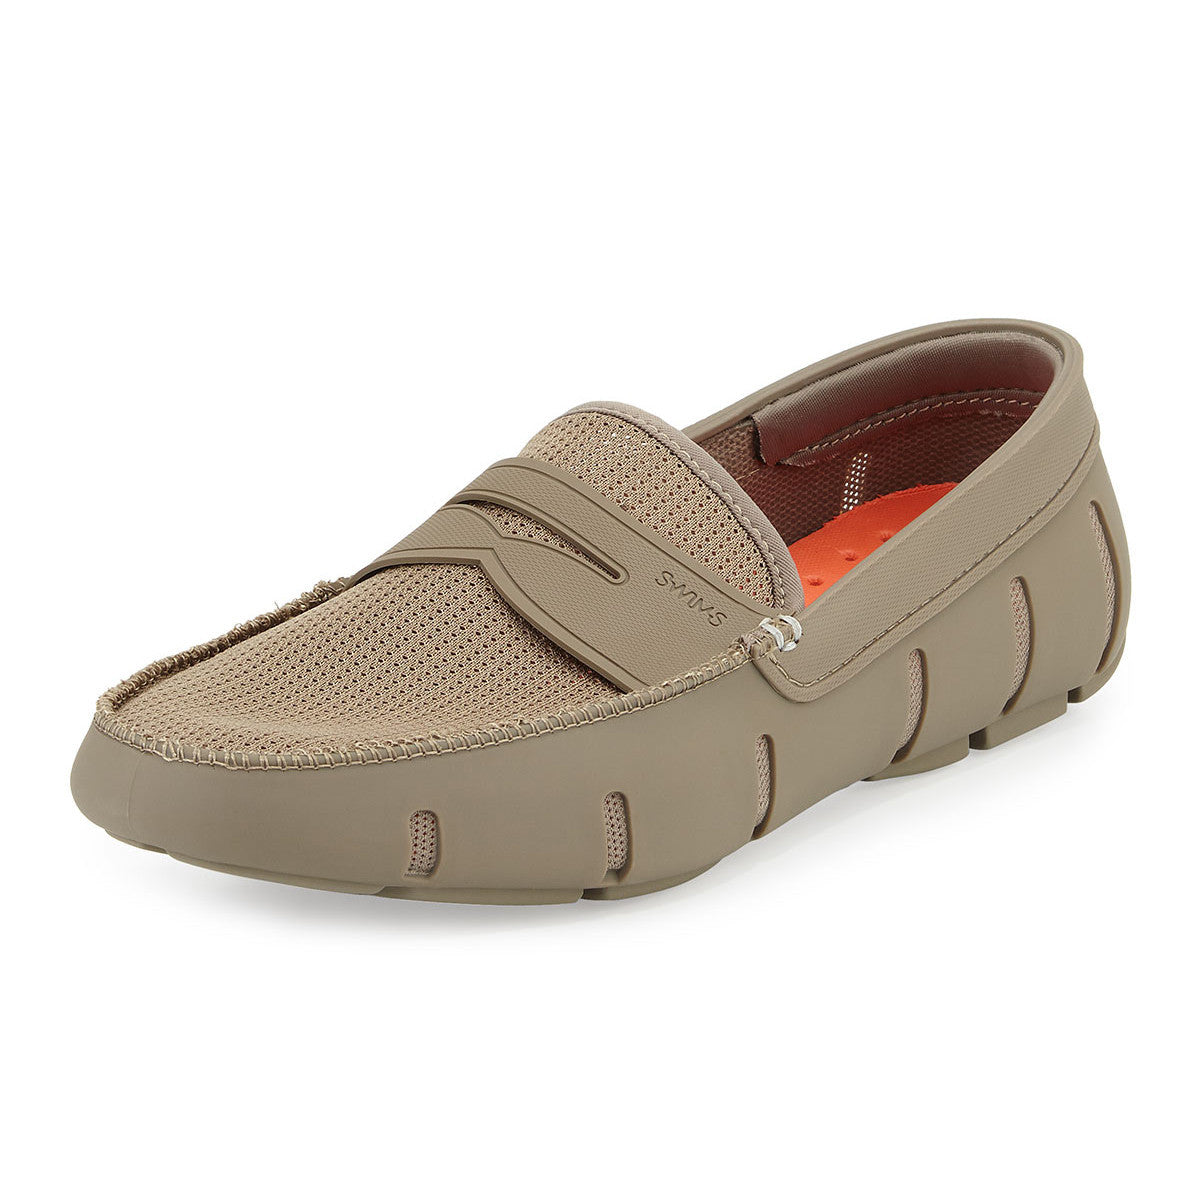 retro stable quality choose clearance Water-Resistant Penny Loafer - FINAL SALE